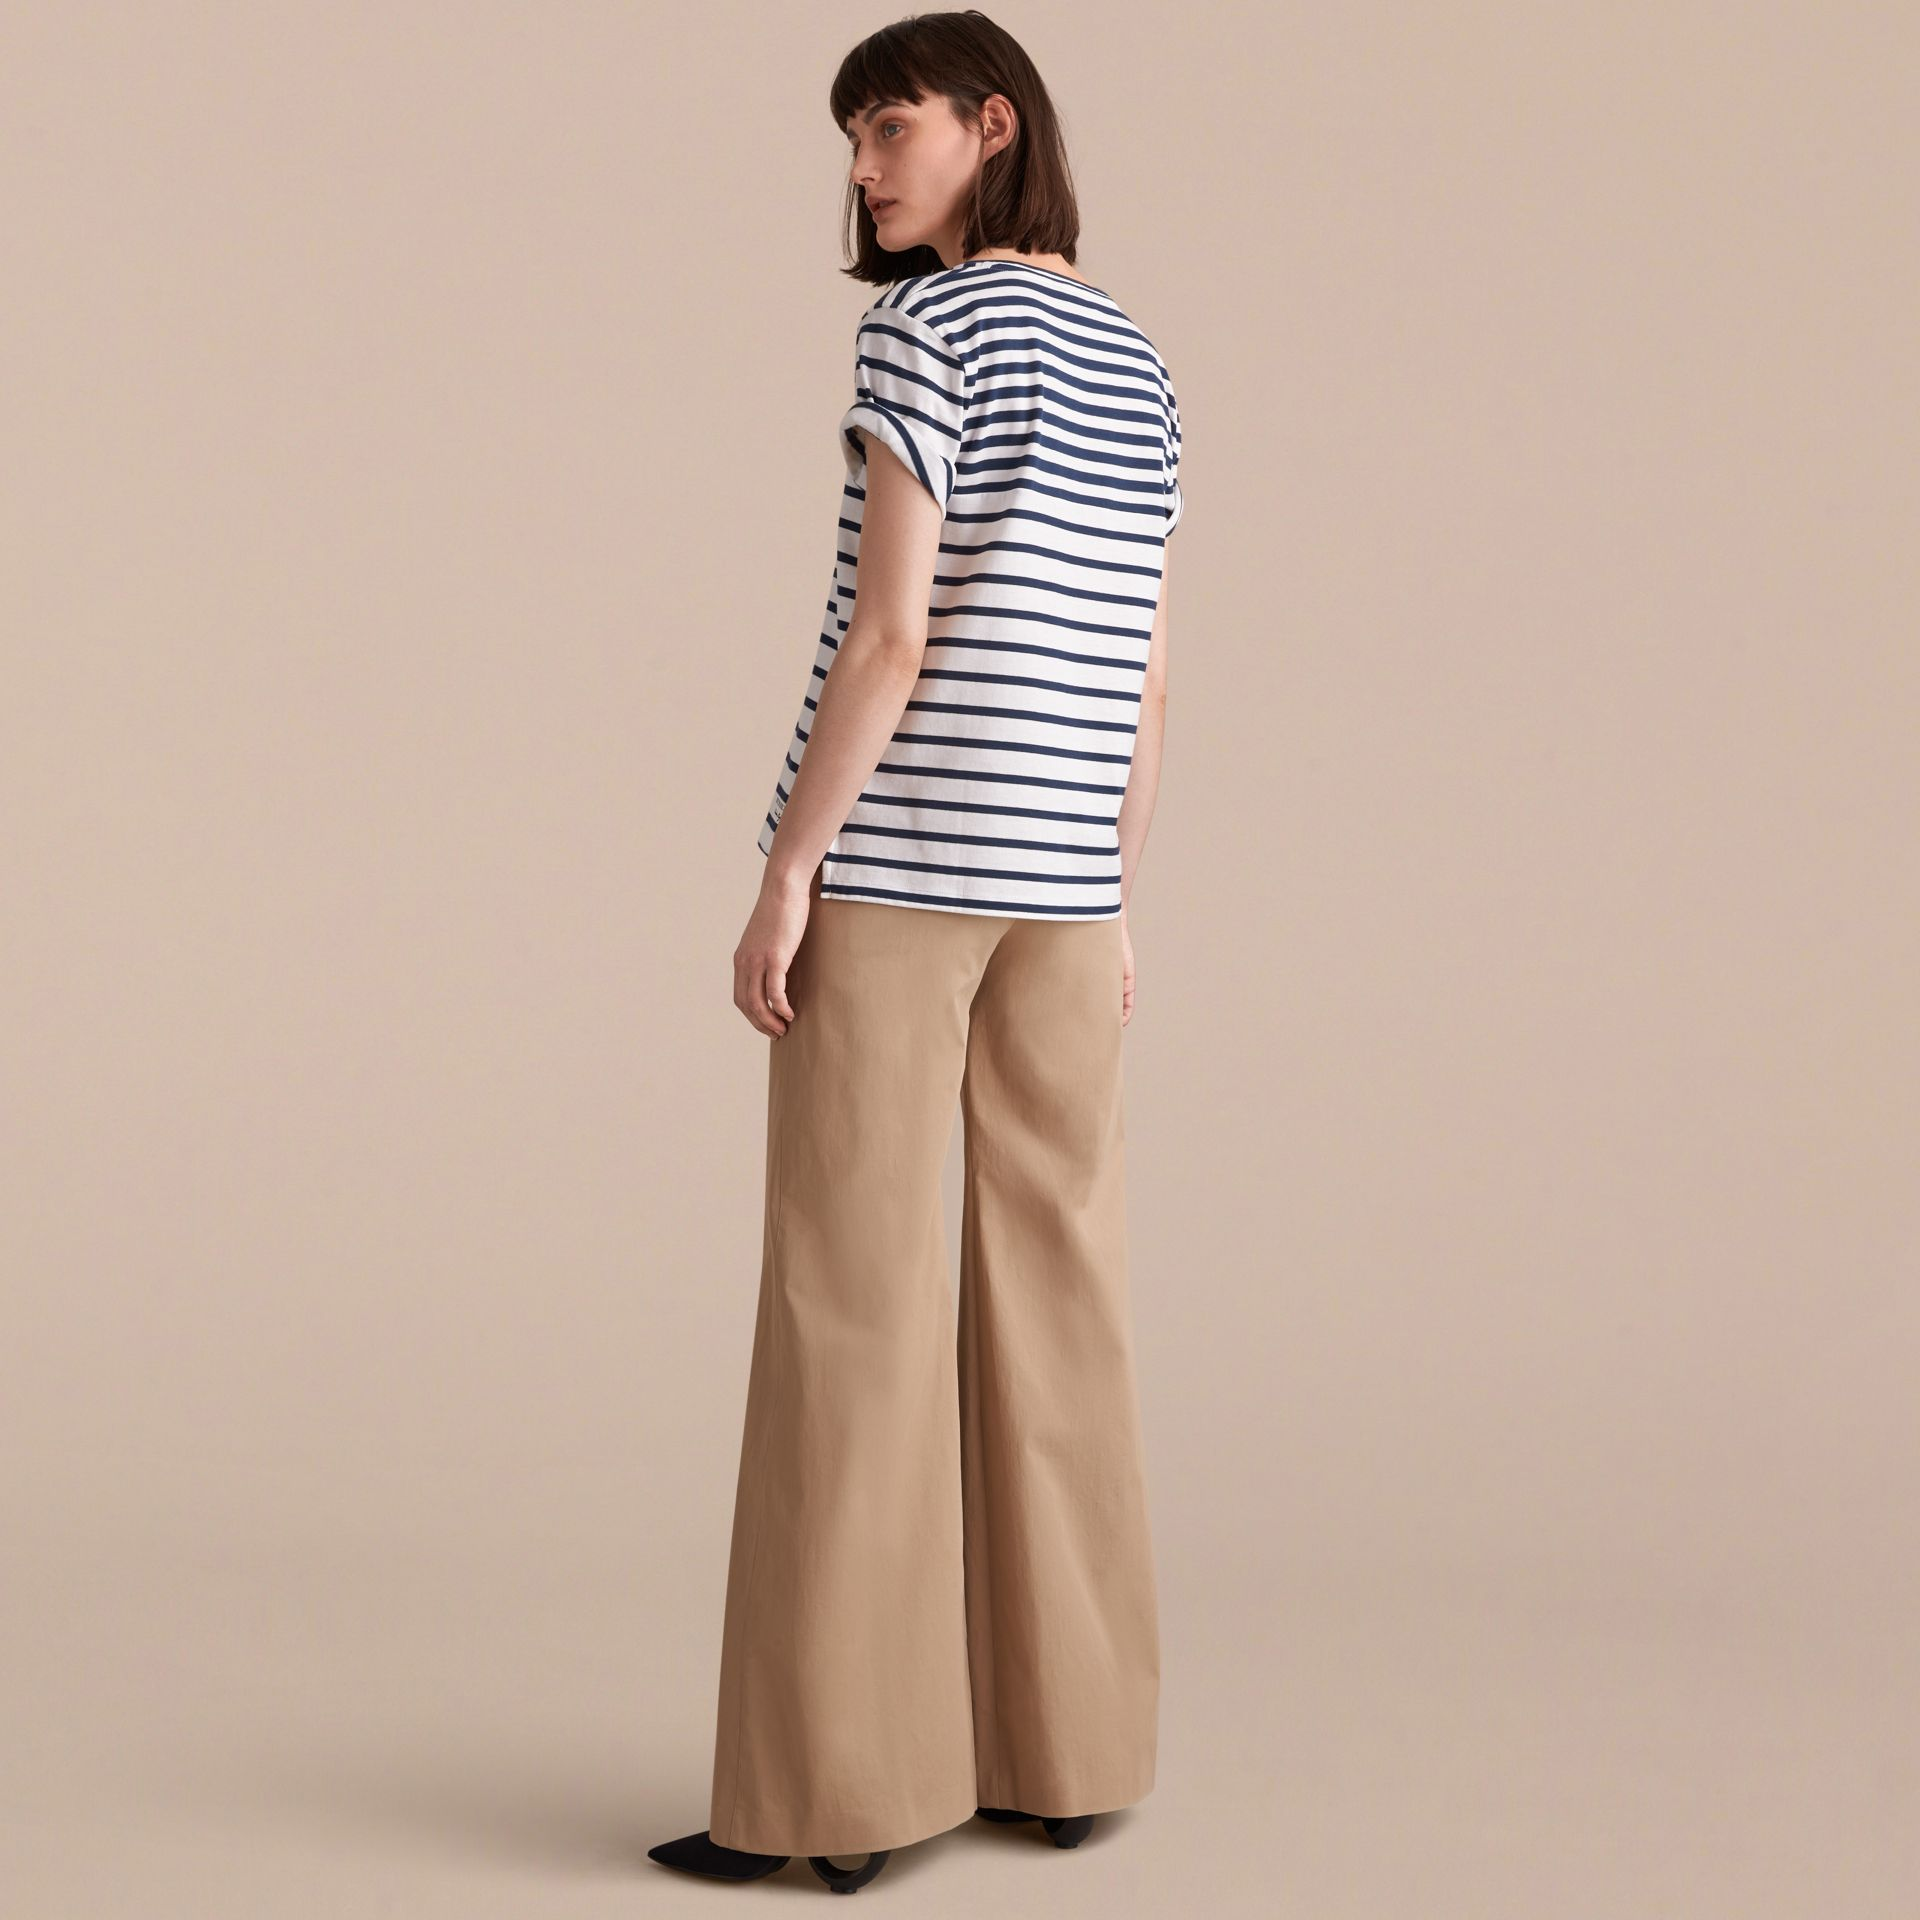 Breton Stripe Cotton T-shirt in Navy/white - Women | Burberry - gallery image 3